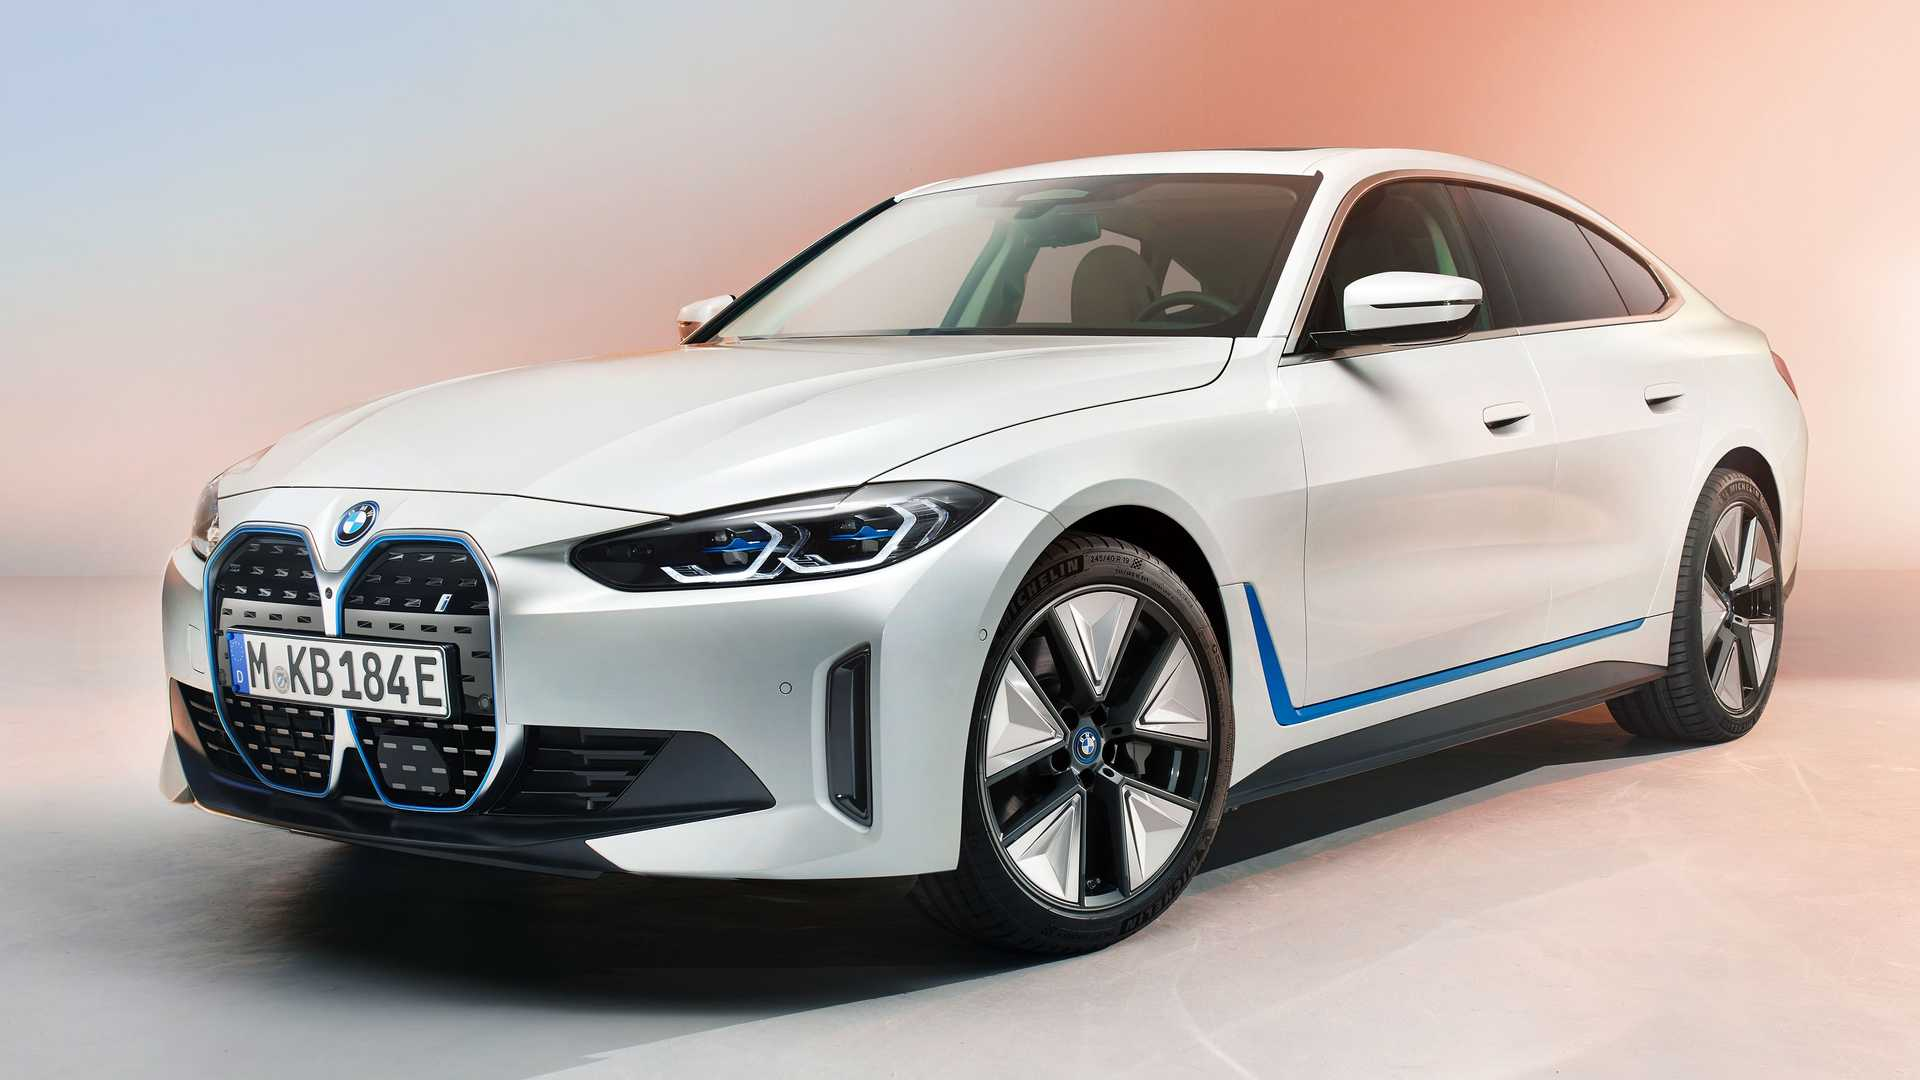 BMW Will Have Its Own EV-Focused Platform By 2025